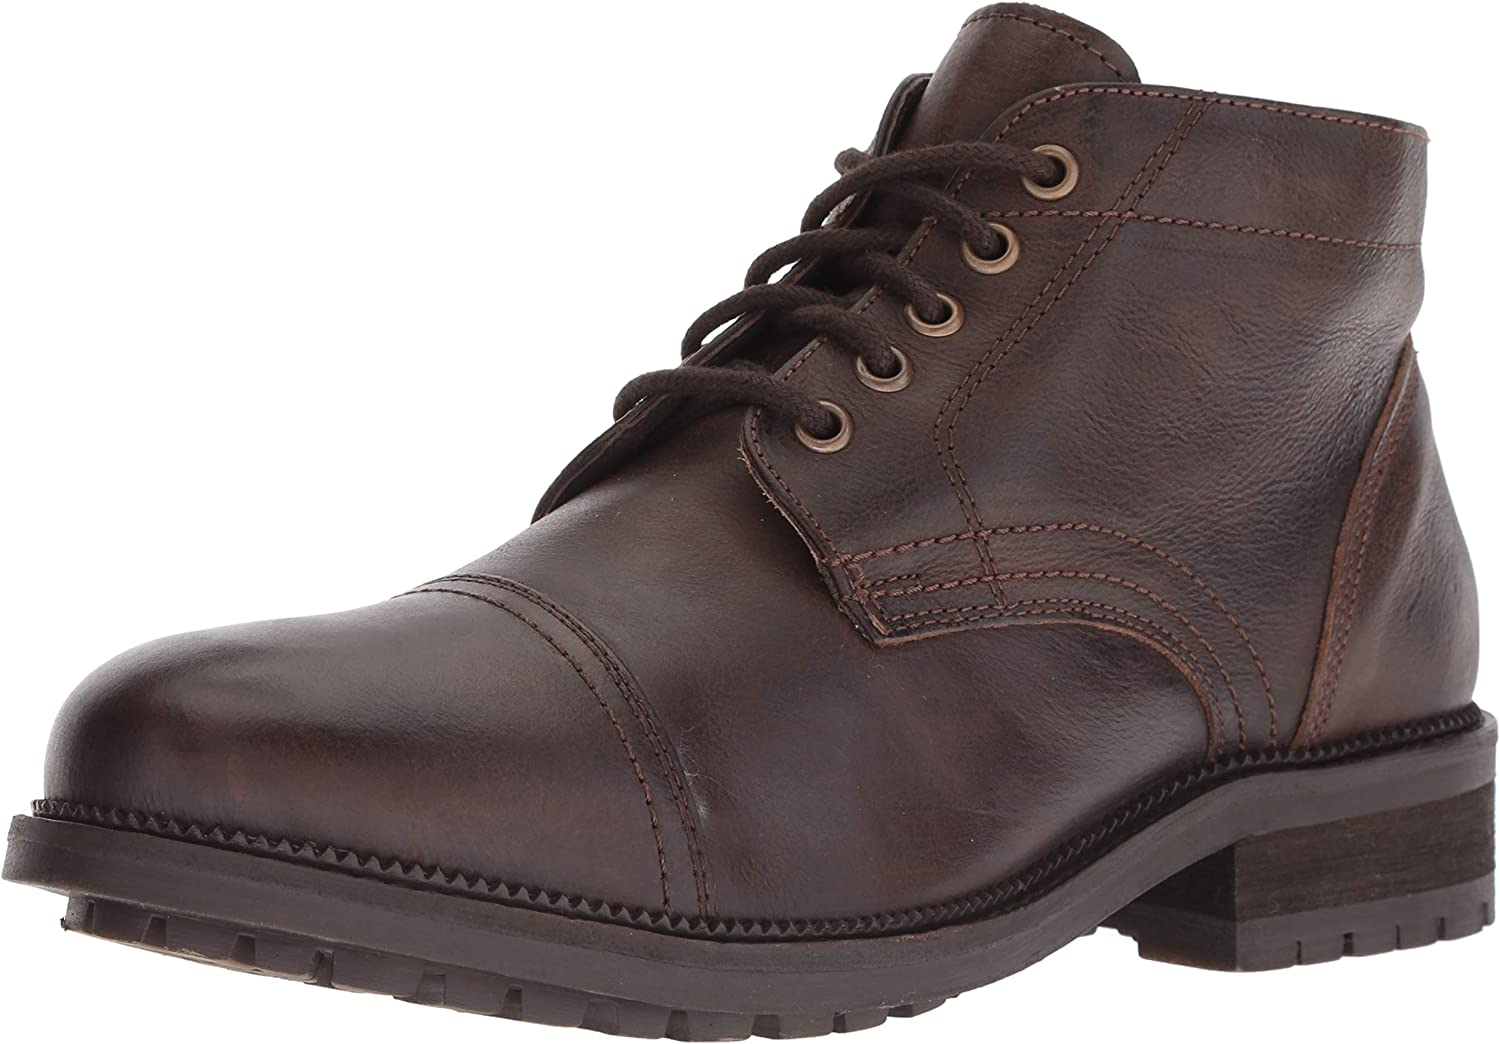   Dr. Scholl's Shoes Men's Airborne Oxford Boot   Oxford & Derby